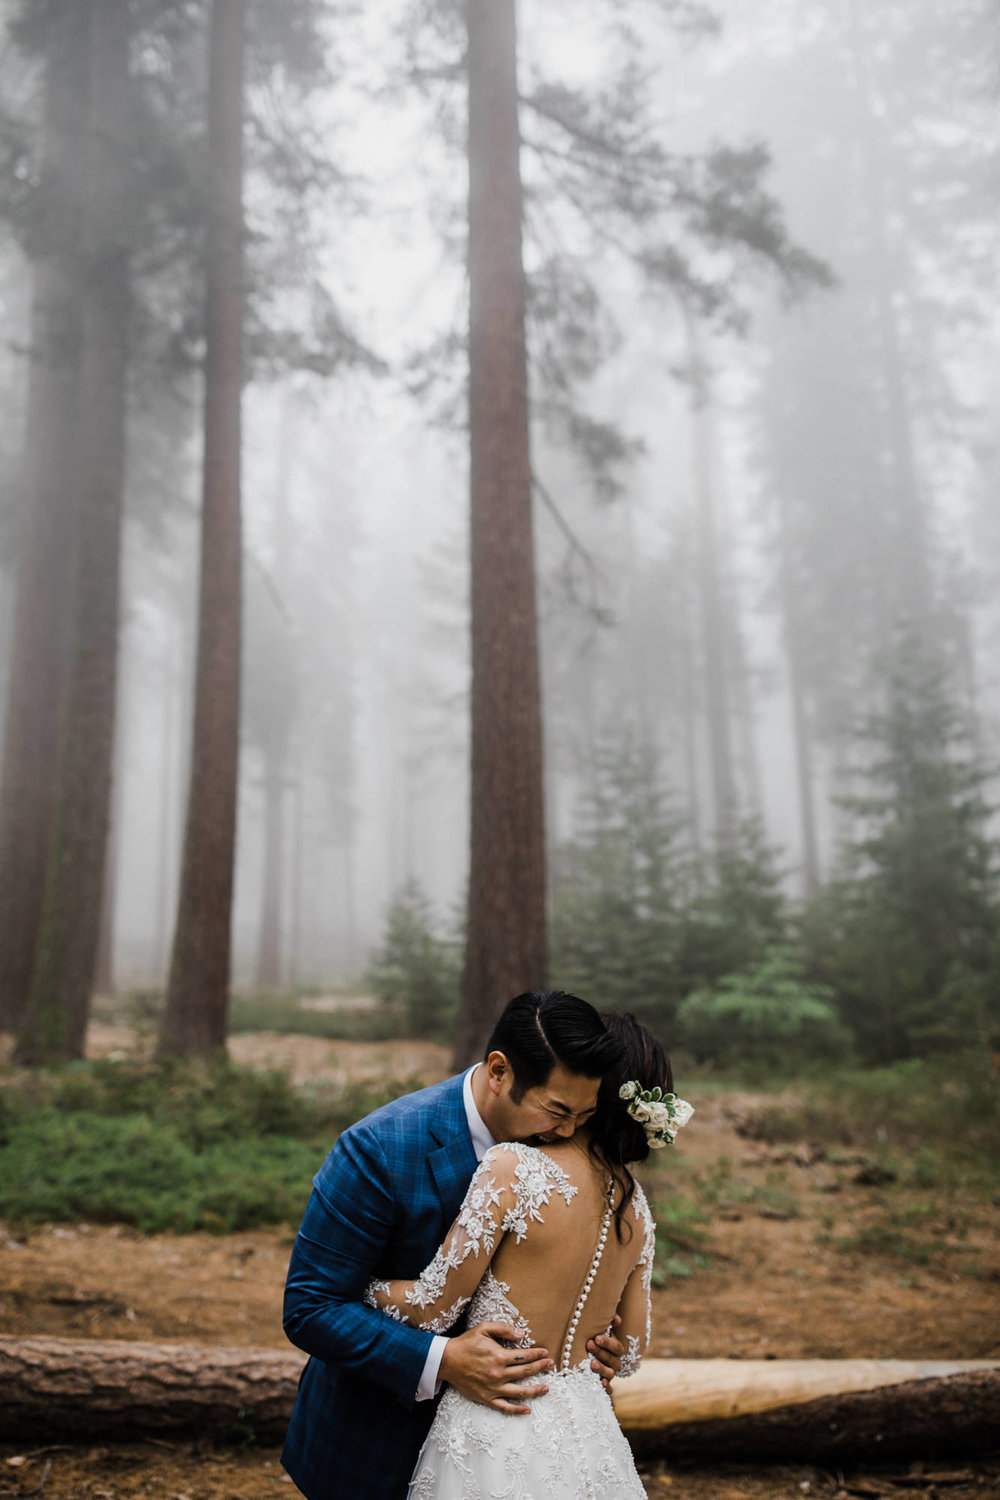 sequoia national park | foggy intimate wedding day in a giant forest | california adventure elopement photographer | the hearnes adventure photography | www.thehearnes.com